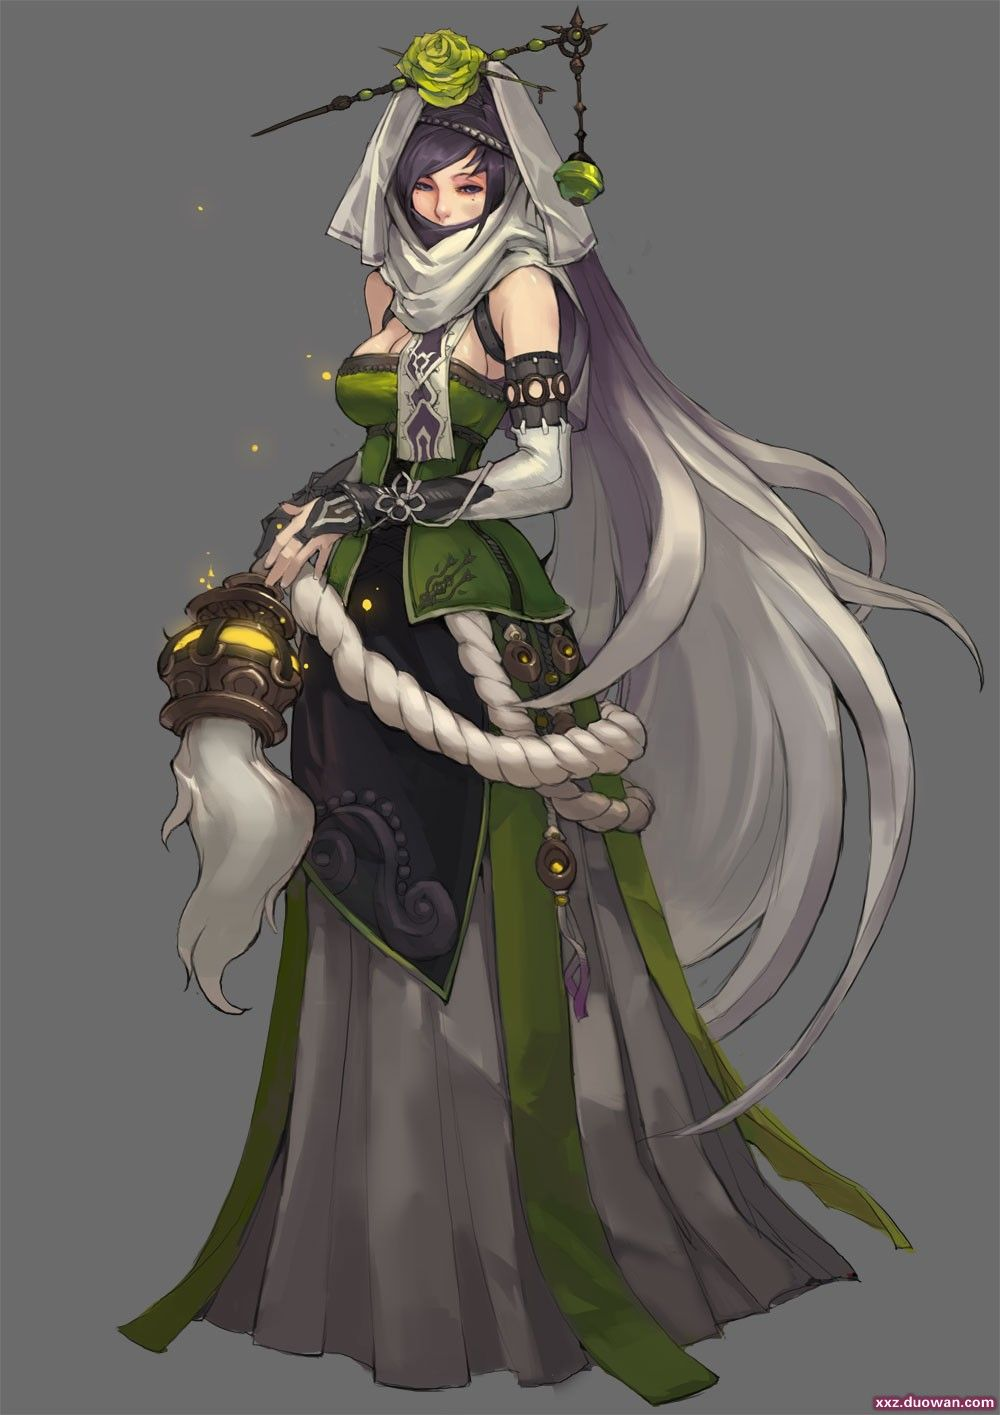 Lady Cosimia of the guild. Powers of light and dark